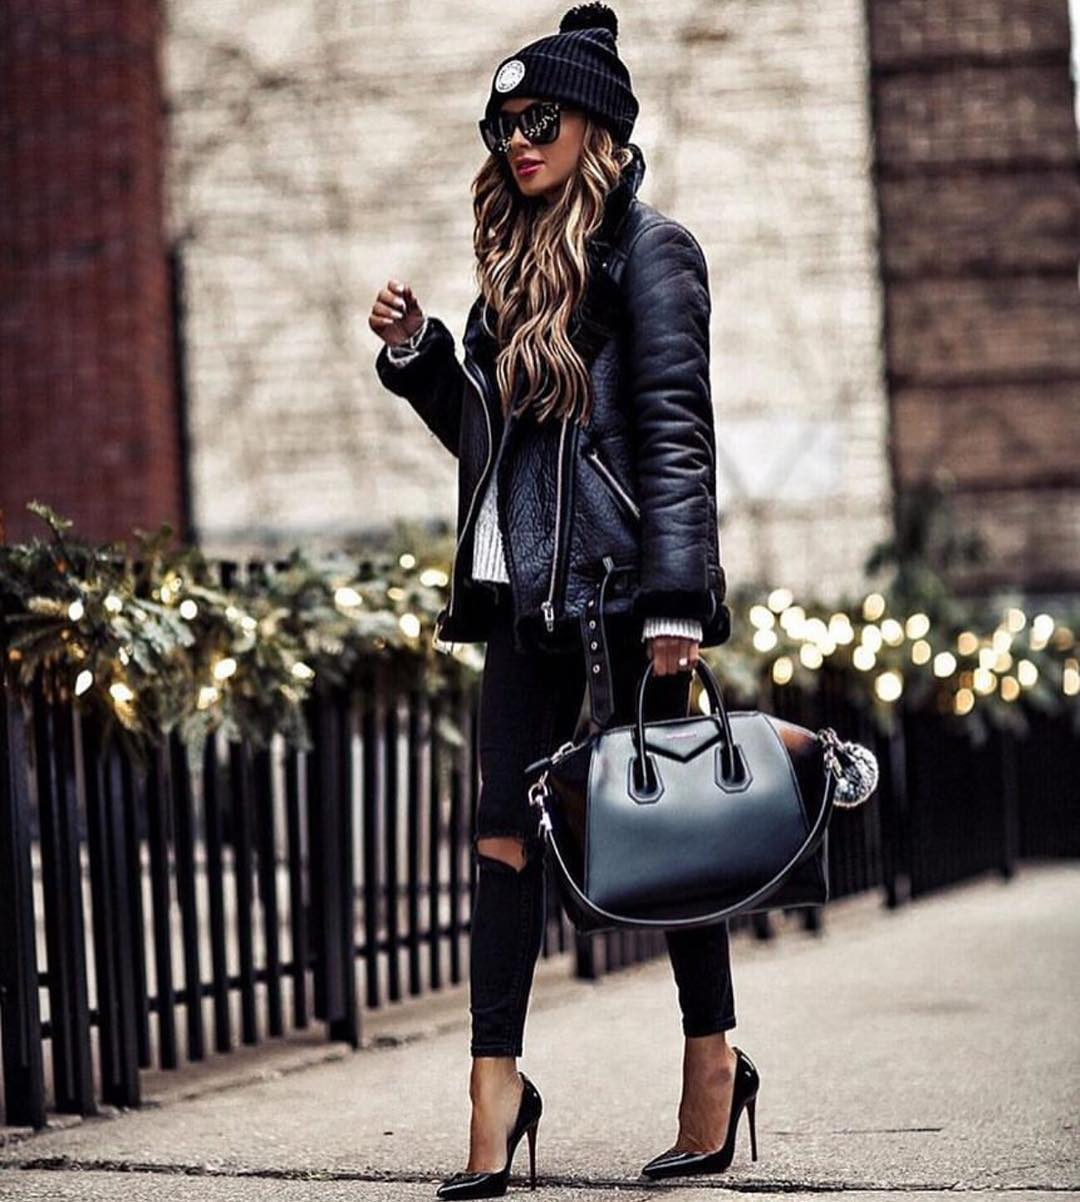 All Black Fall Outfit For Casual Street Walks: Aviator Jacket And Ripped Jeans 2019